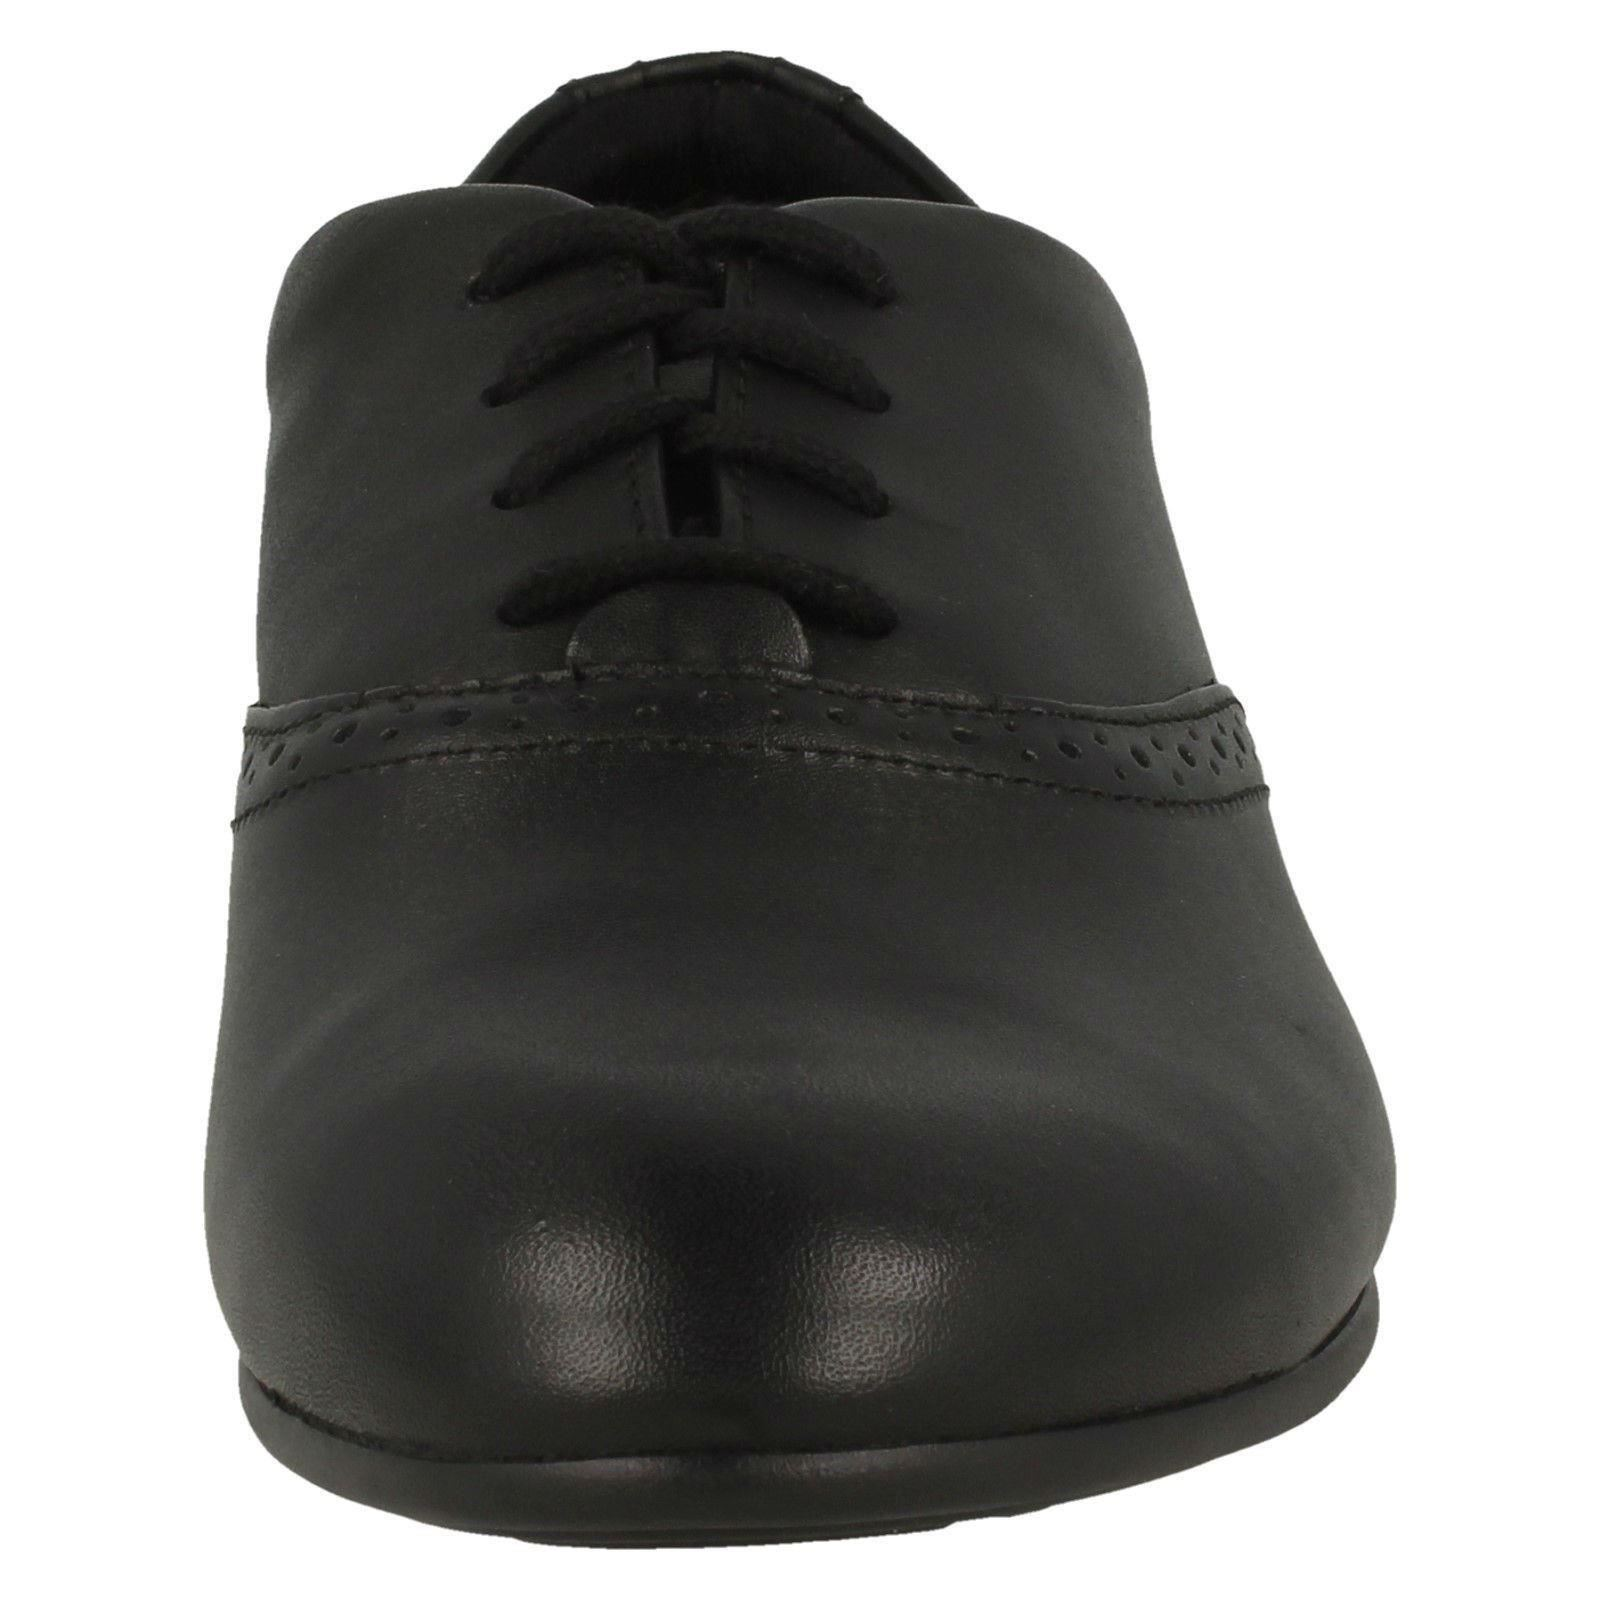 Up School Shoes Brogue Lace 'jules Clarks Niñas Negro Walk' qawHZAFnz